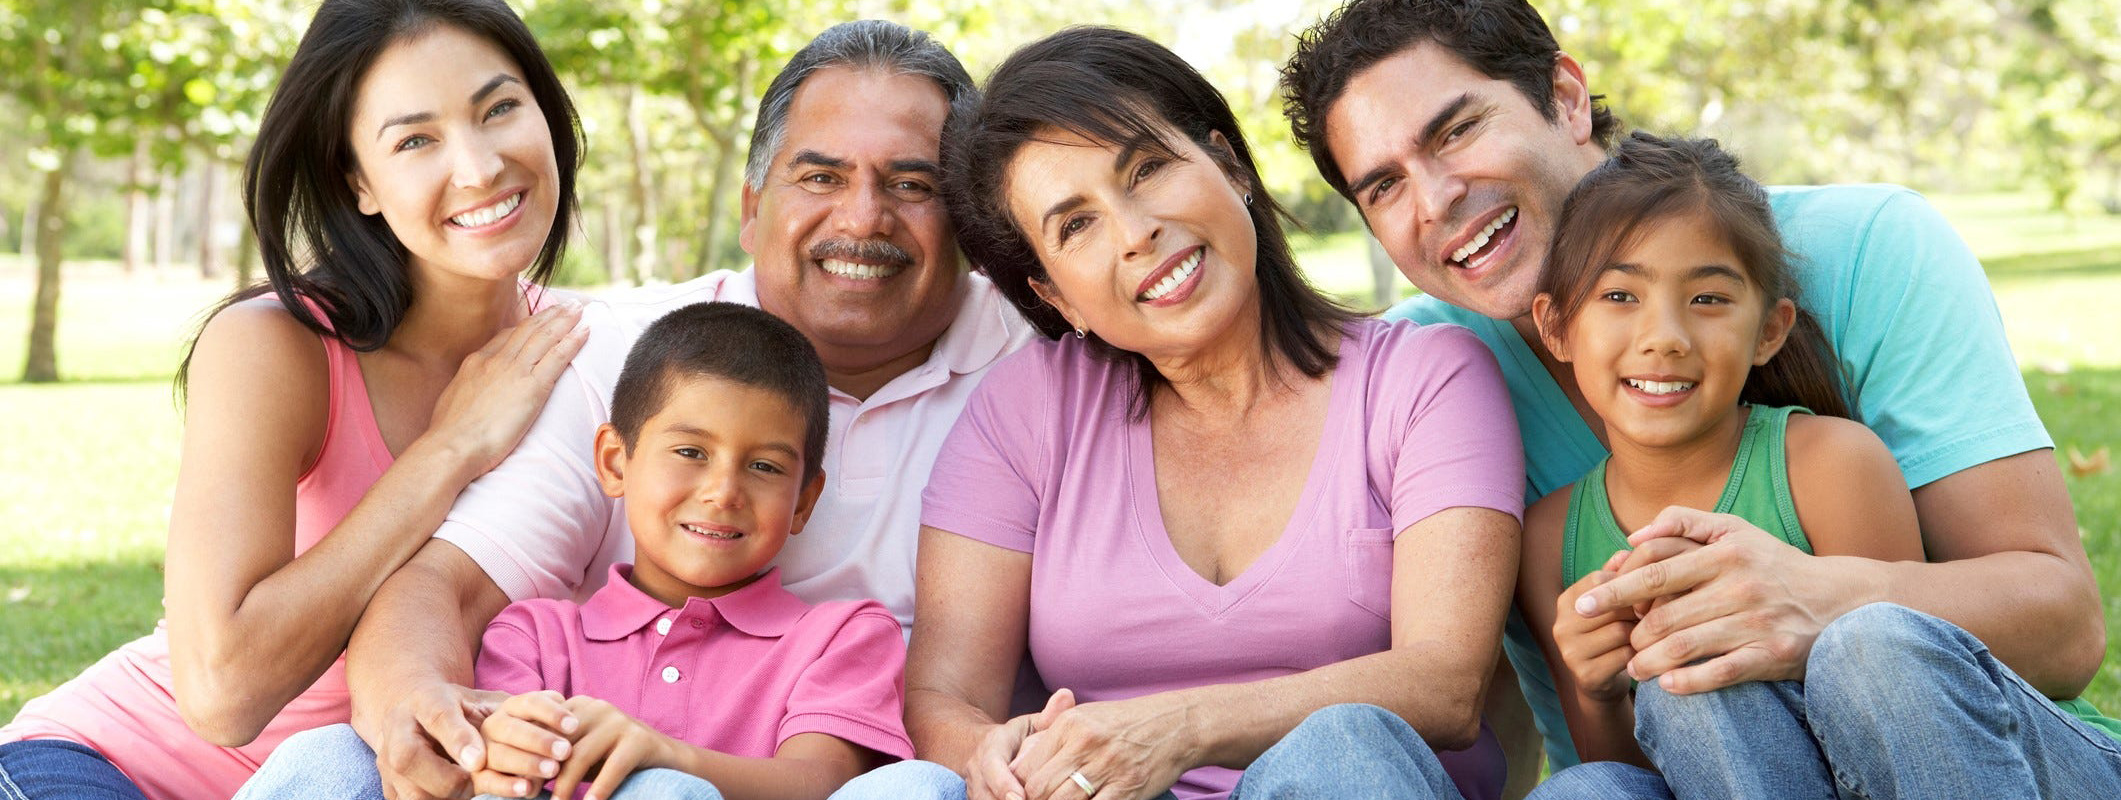 Latino family sitting together at a park